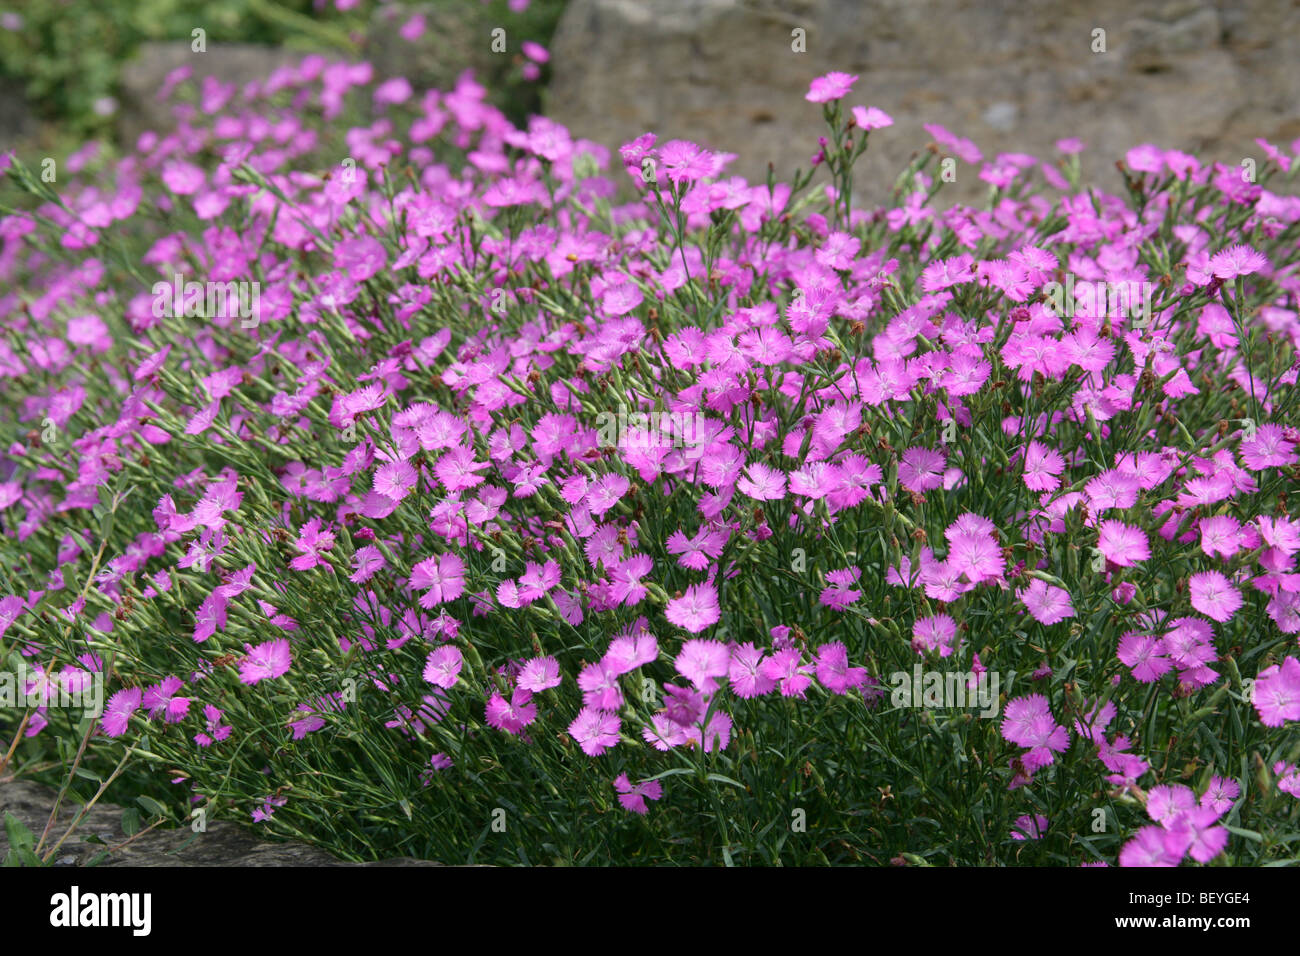 Ragged Pink or Sequier's Pink, Dianthus seguieri, Caryophyllaceae, South West Europe, Temperate Asia - Stock Image